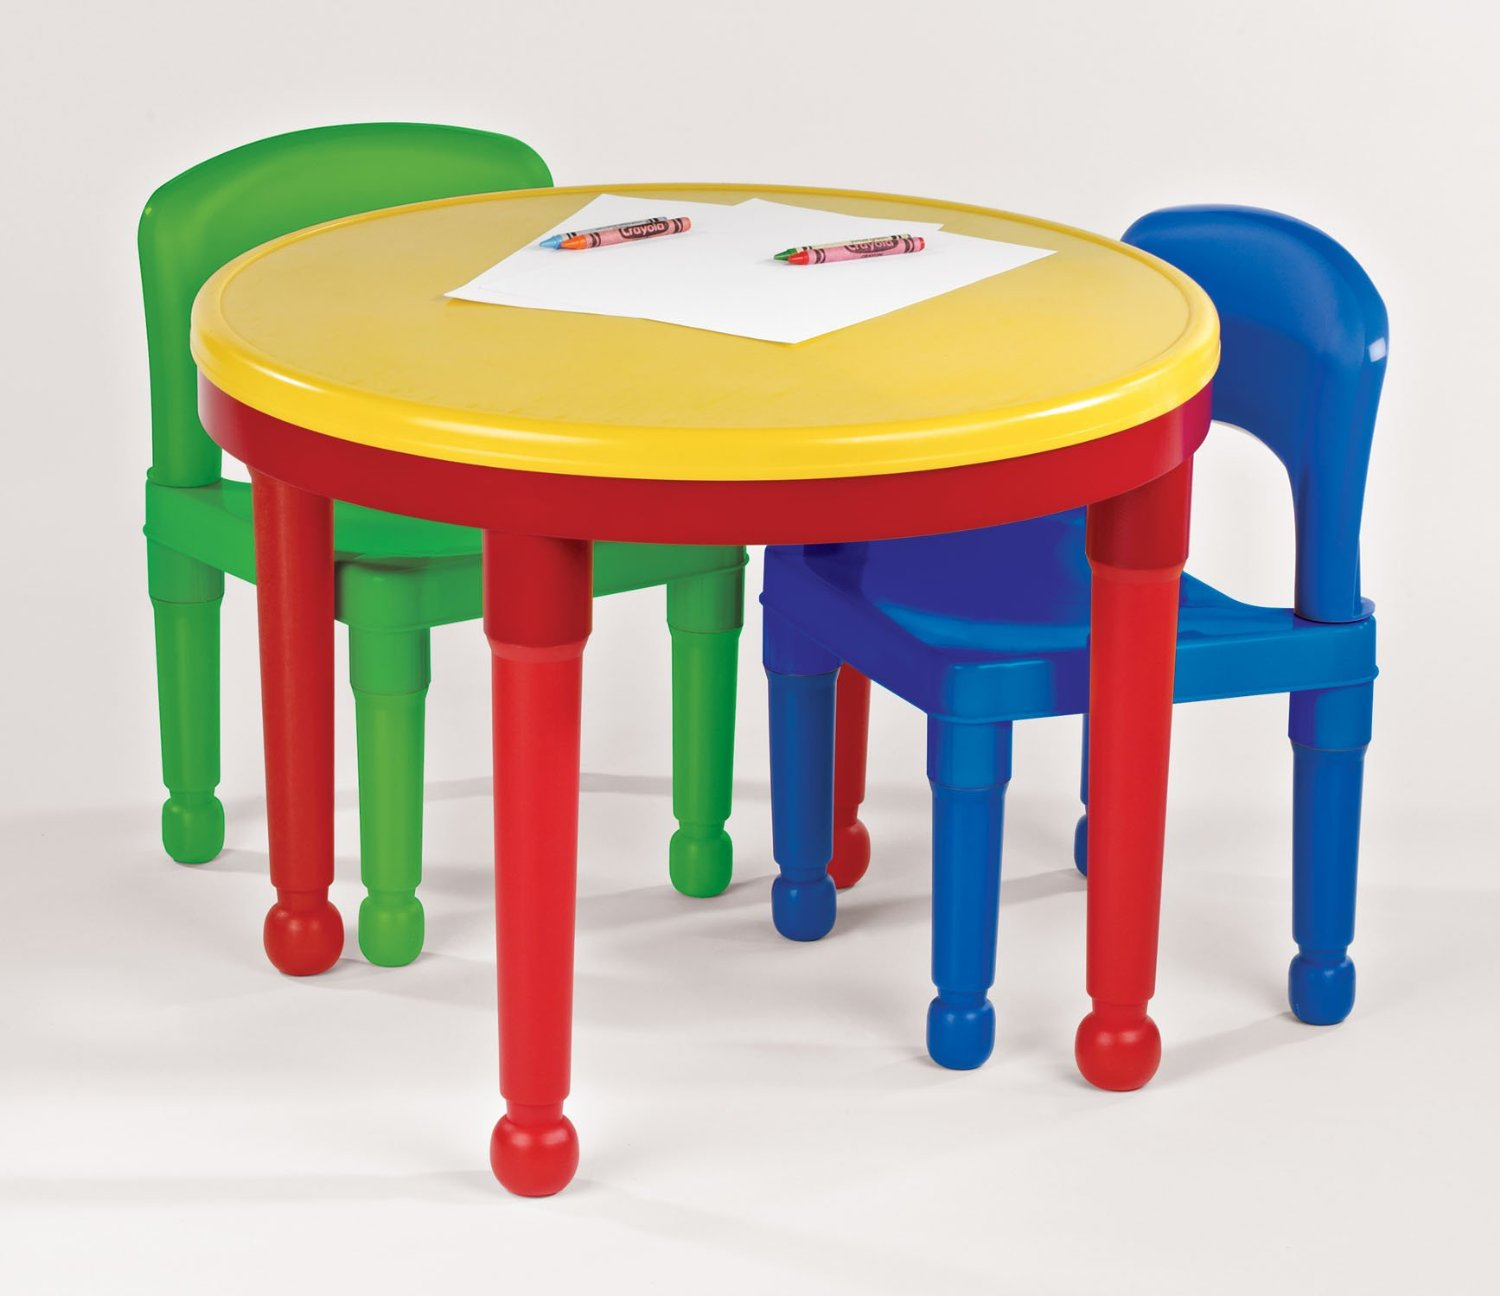 71aLC8oghOL._SL1500_ & Tot Tutors CT599 2-in-1 Round Plastic Construction Table and 2 Chairs